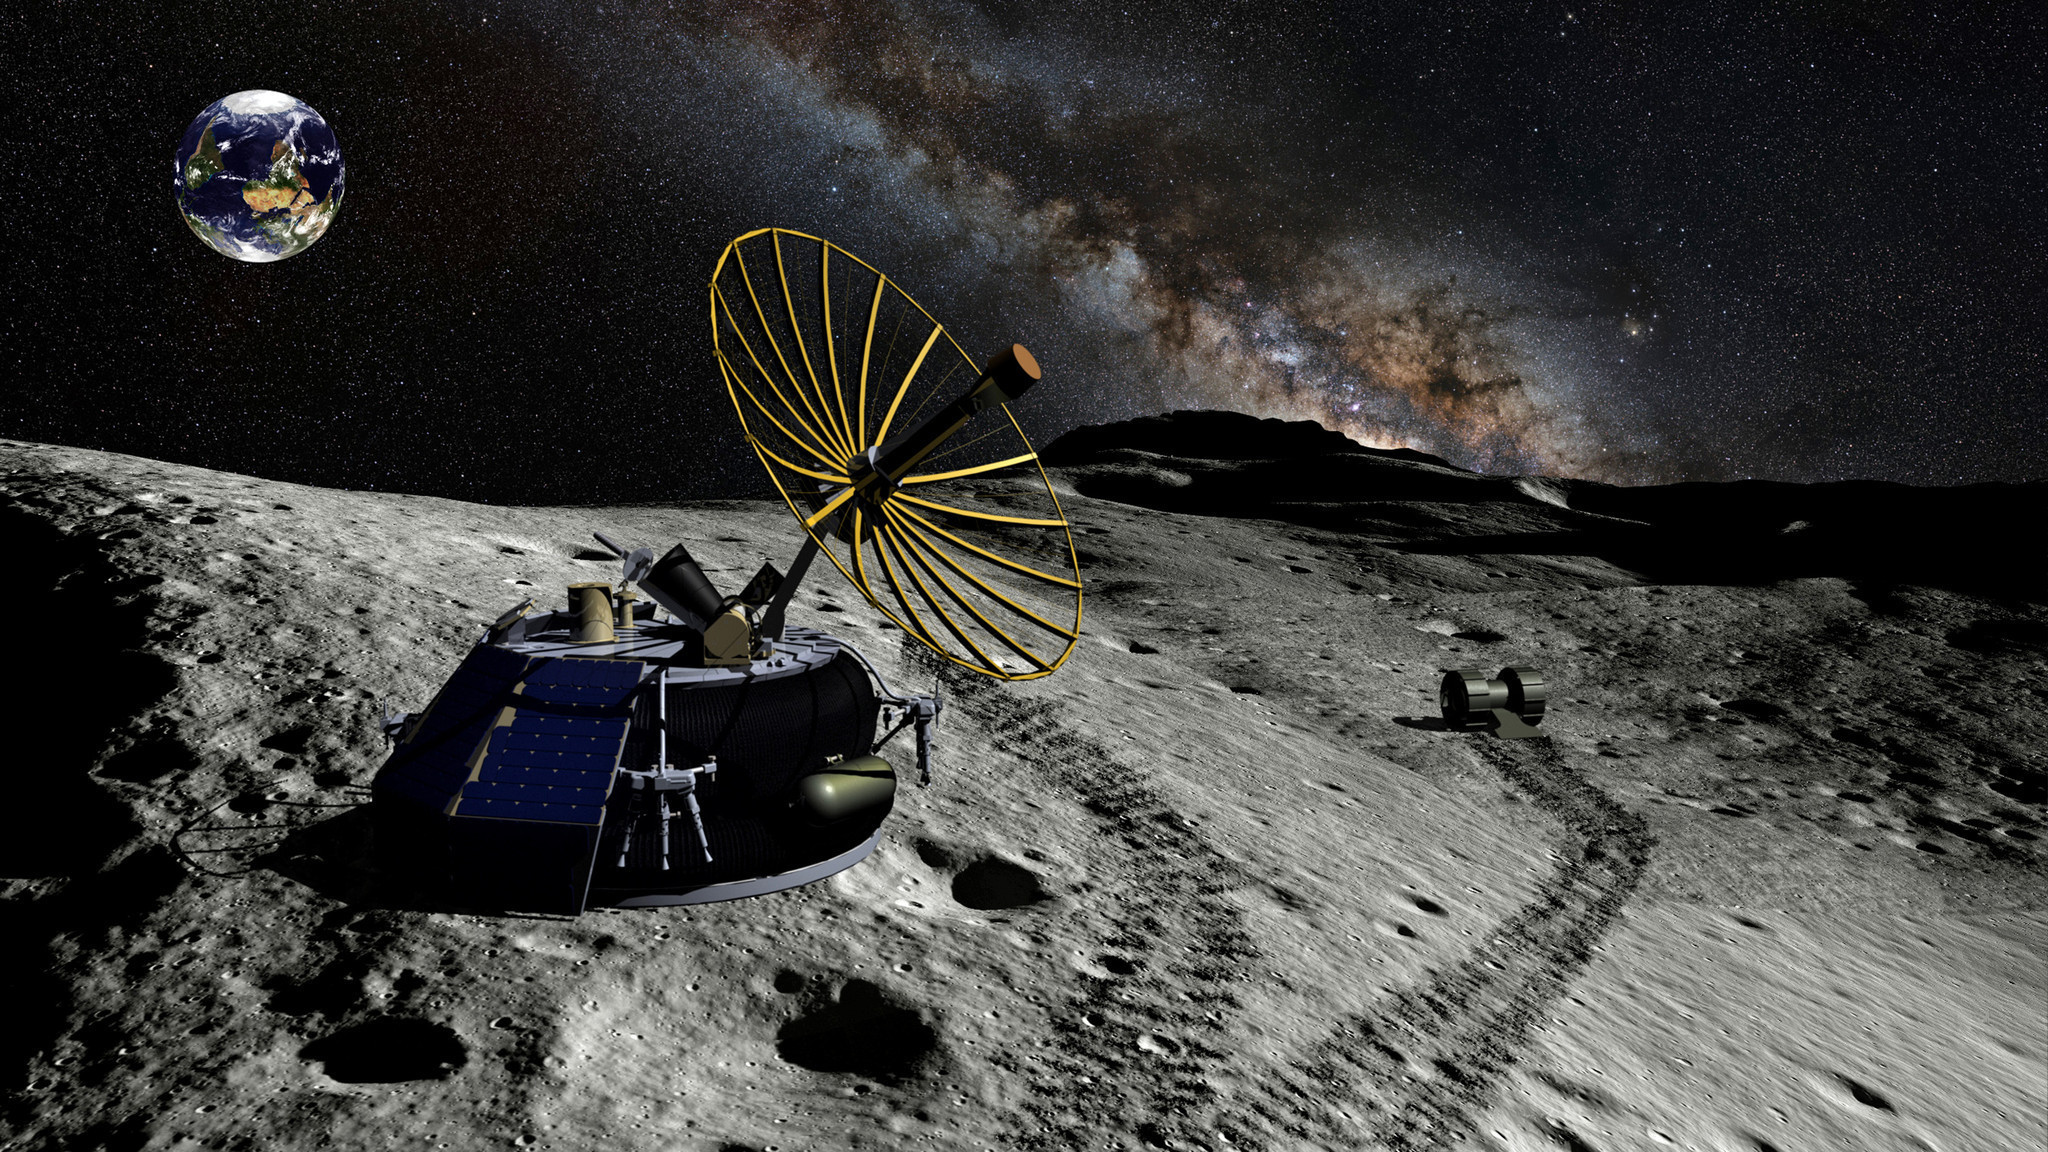 In one small step for space business, Moon Express is cleared for lunar mission